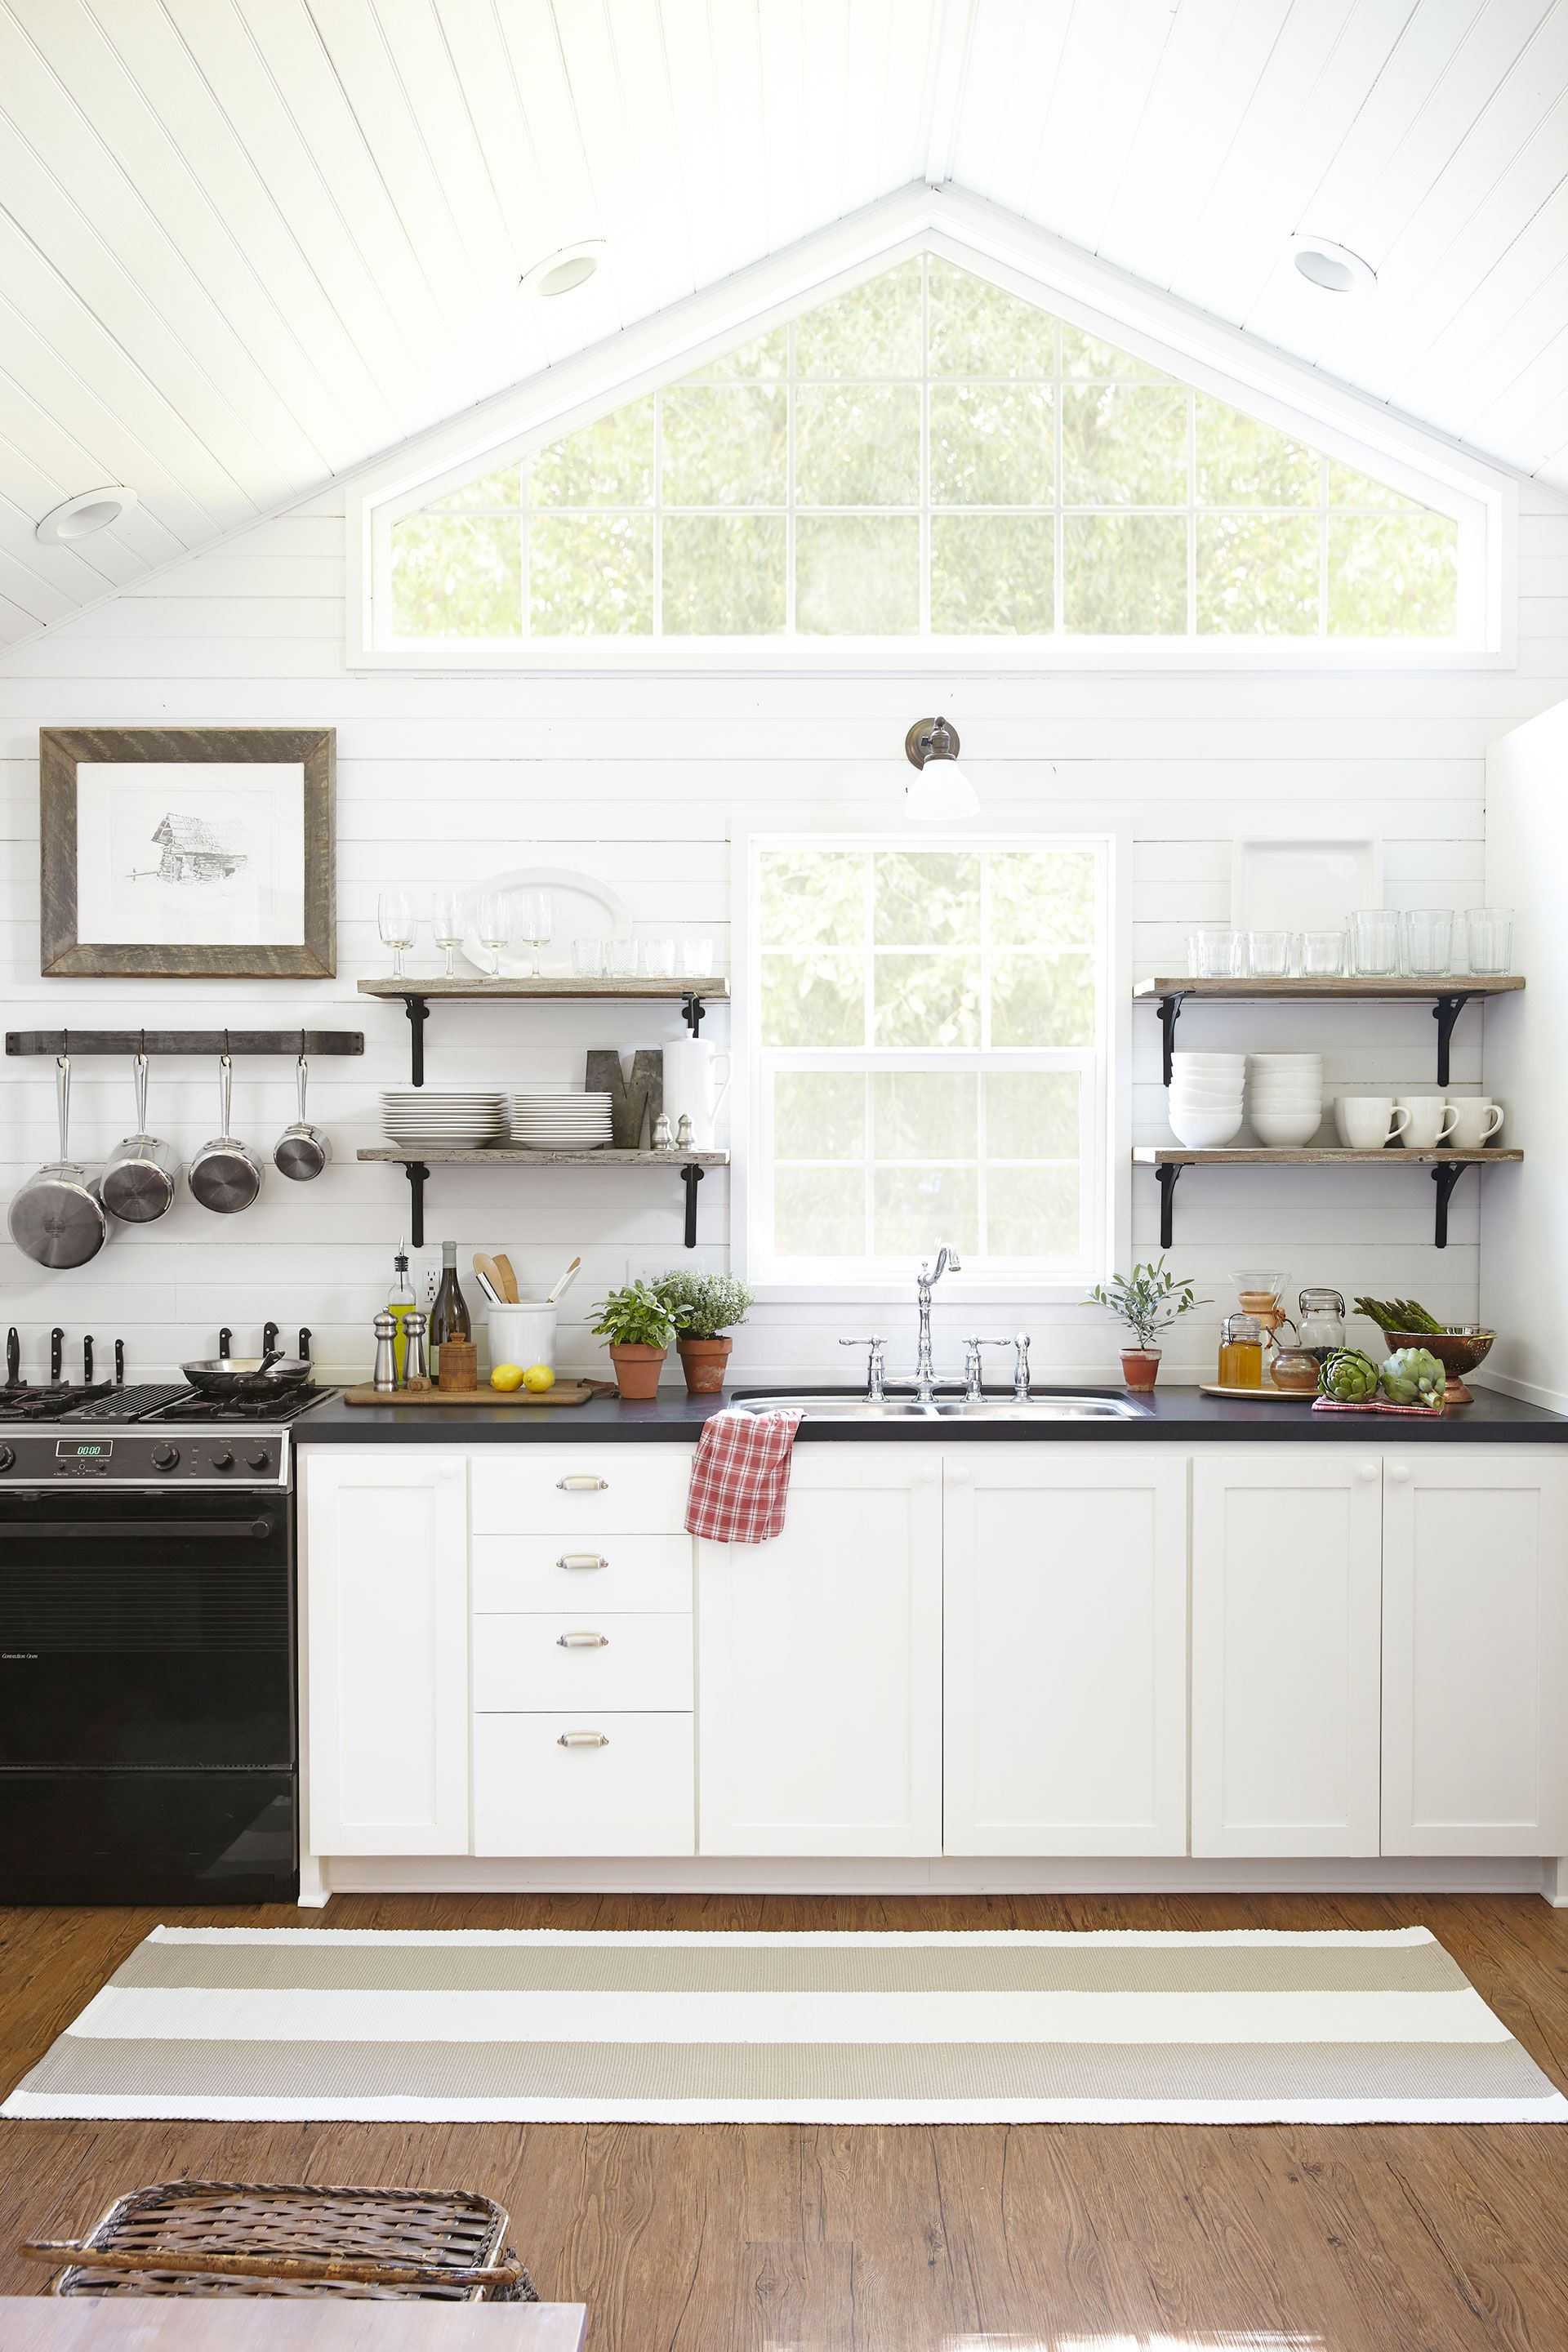 11 Vintage Appliances We Want in Our Kitchen | Soapstone counters ...